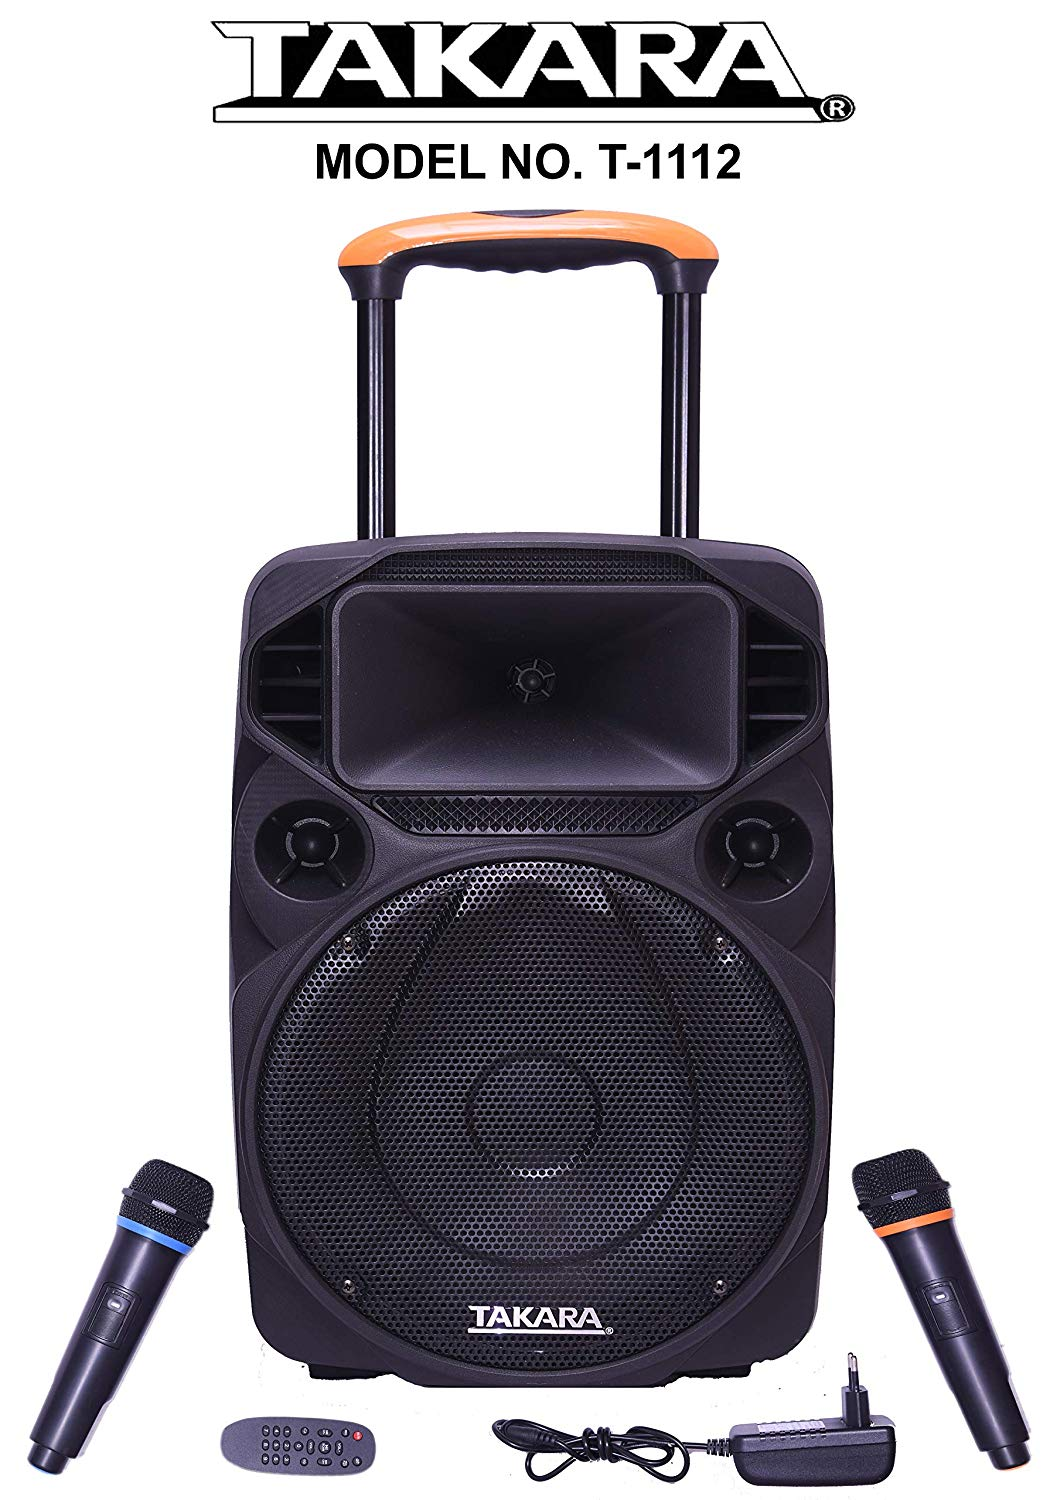 TAKARA T-1112 Portable Trolley Speaker 12 Inch Multimedia BT, Karaoke with Audio Recording, USB, SD,FM PA System with 2 Wireless Mic Upto 28% Discount